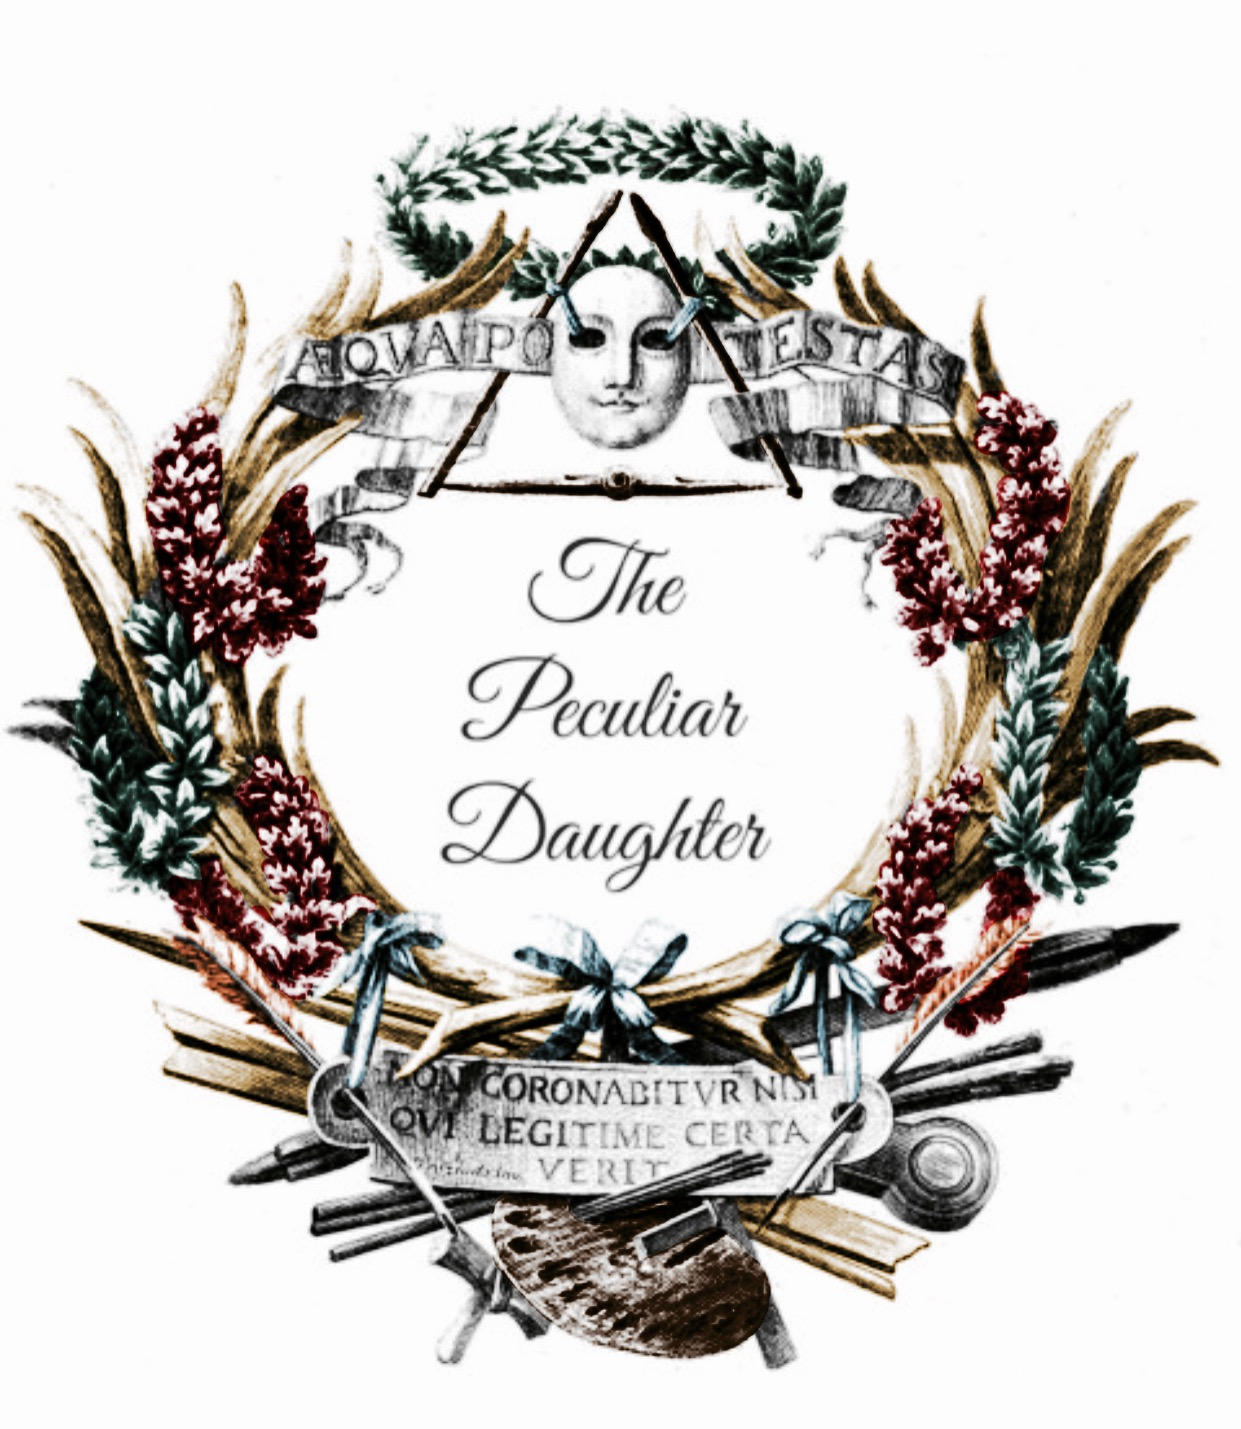 The Peculiar Daughter